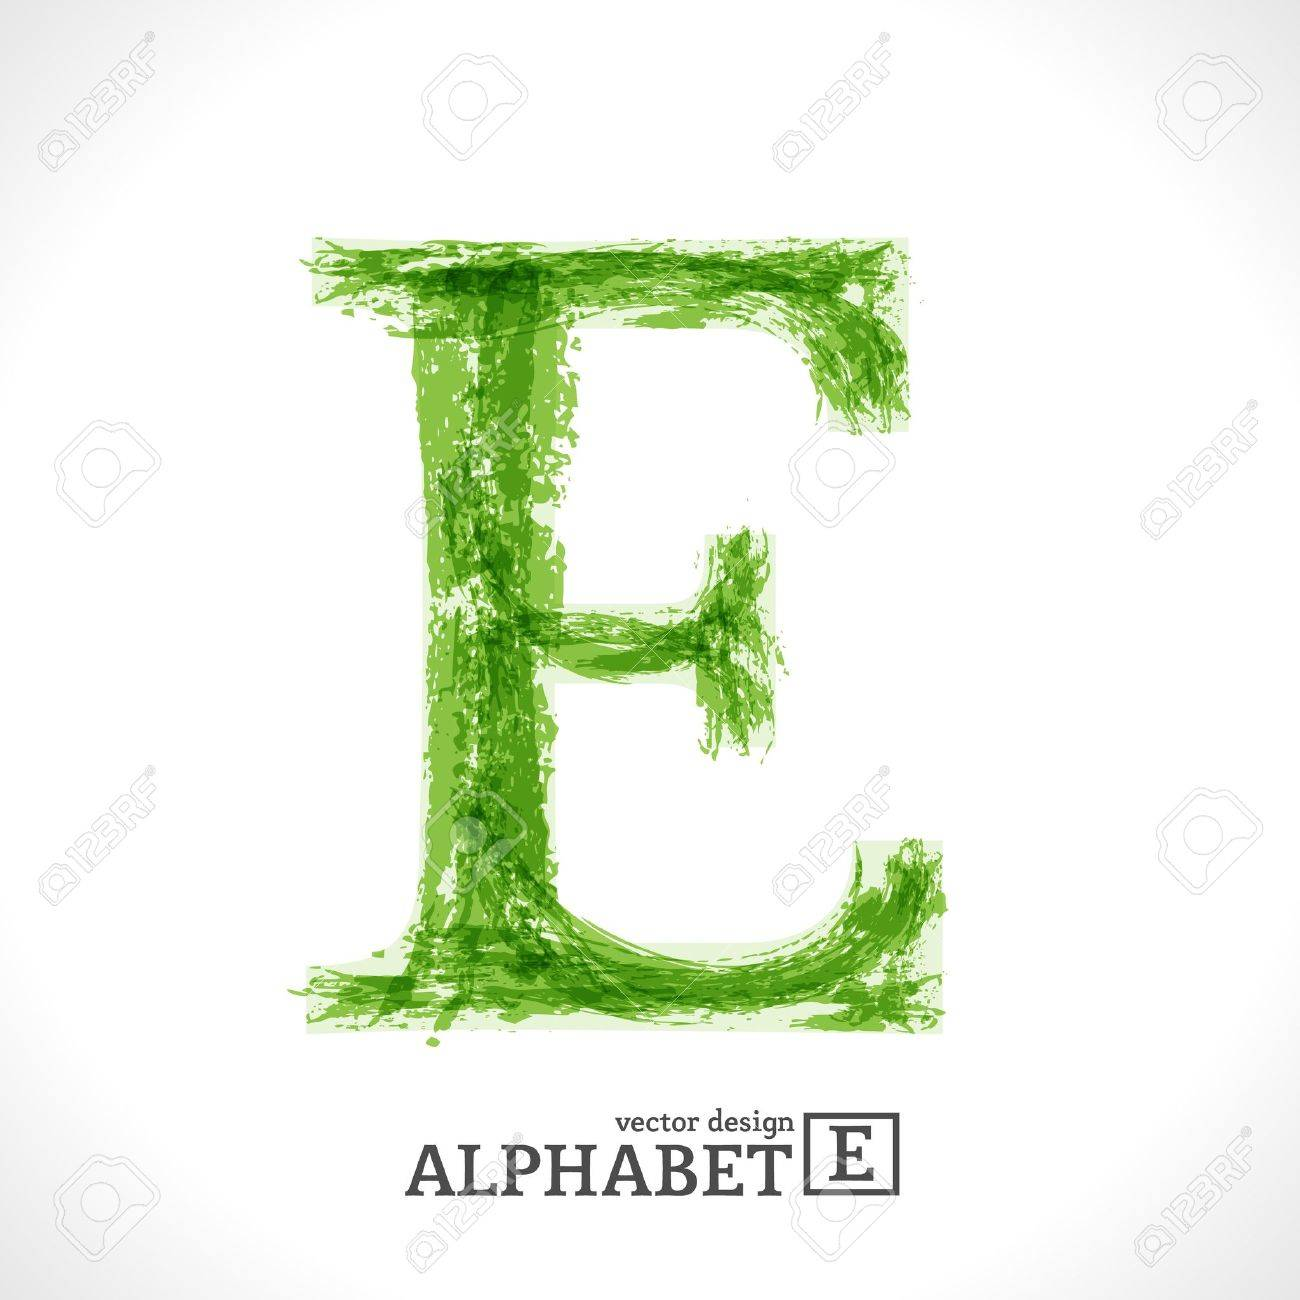 Grunge vector letter green eco style font symbol e royalty free grunge vector letter green eco style font symbol e stock vector 16917034 biocorpaavc Gallery